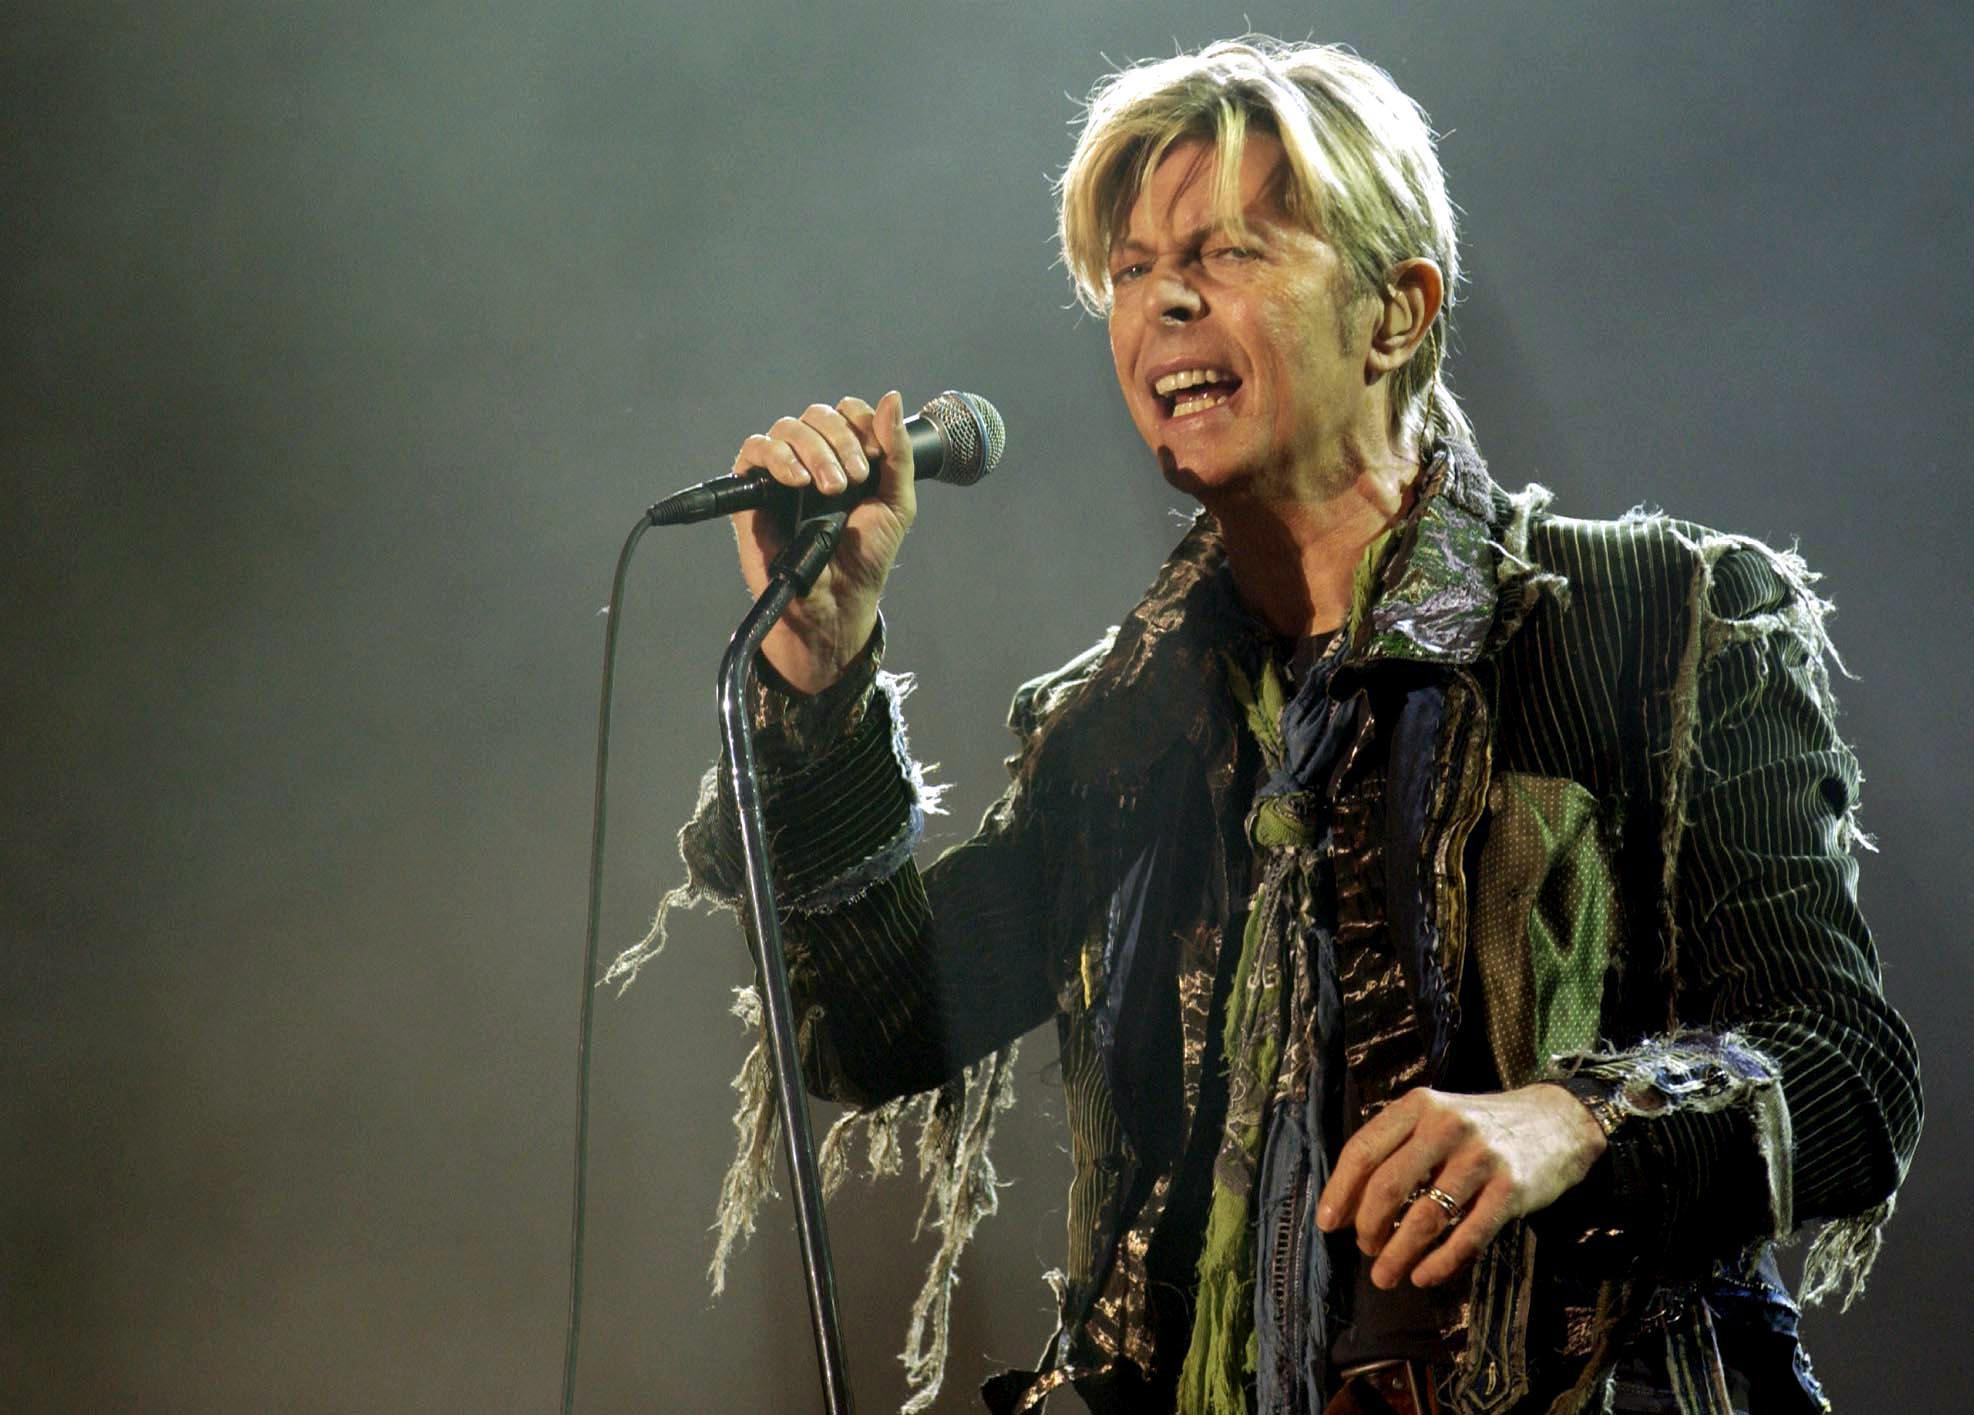 File photo of David Bowie dated June 13, 2004.